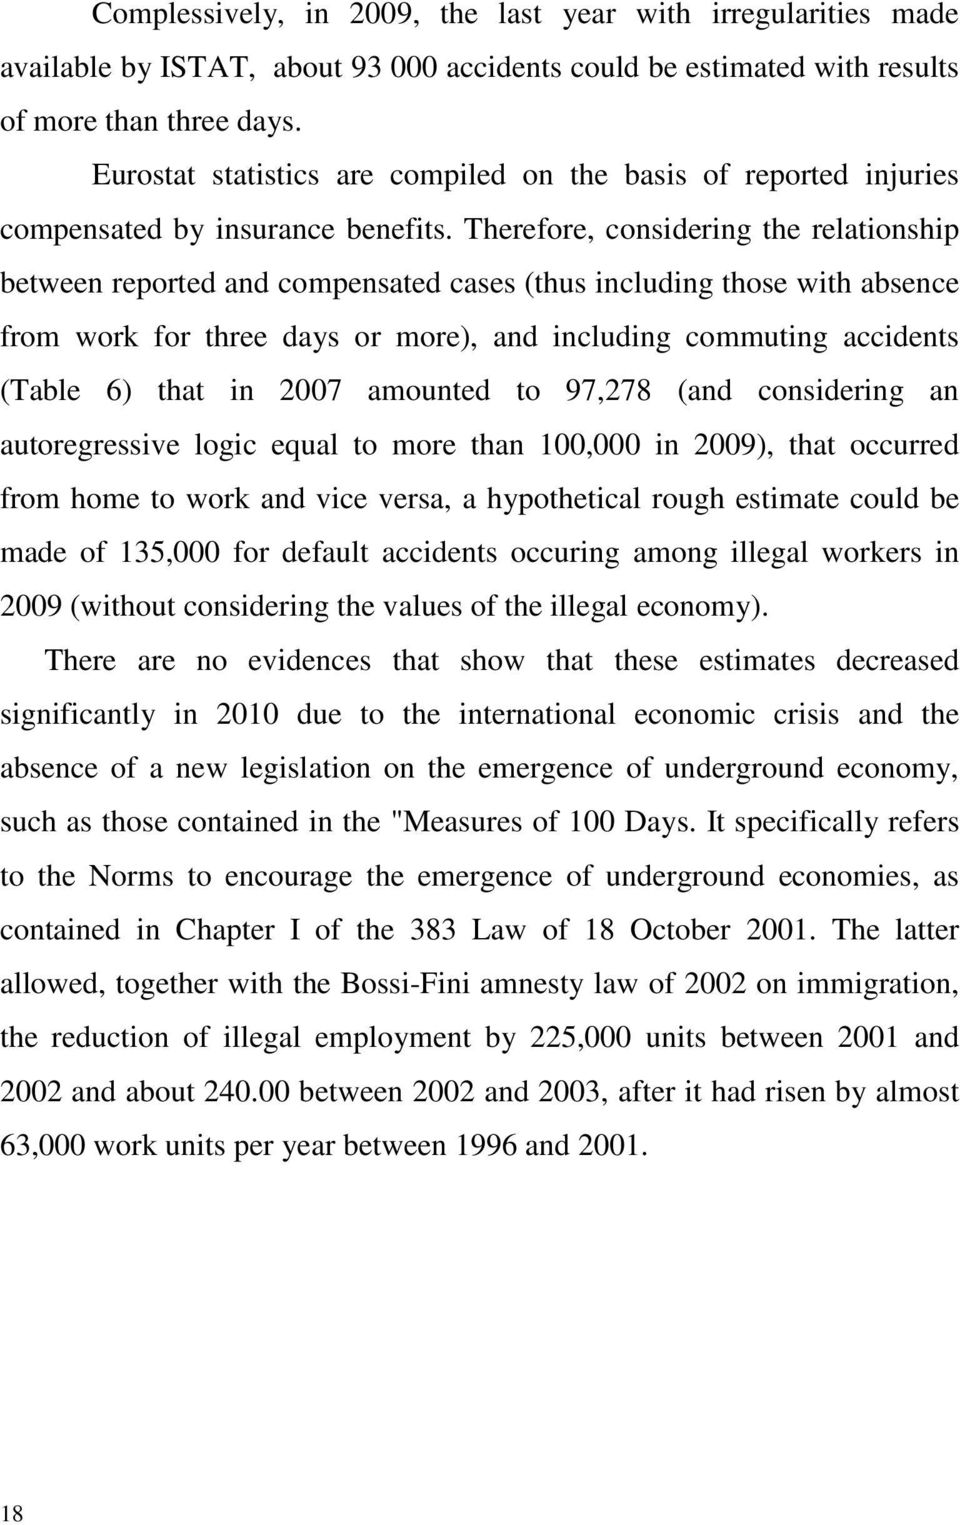 Therefore, considering the relationship between reported and compensated cases (thus including those with absence from work for three days or more), and including commuting accidents (Table 6) that